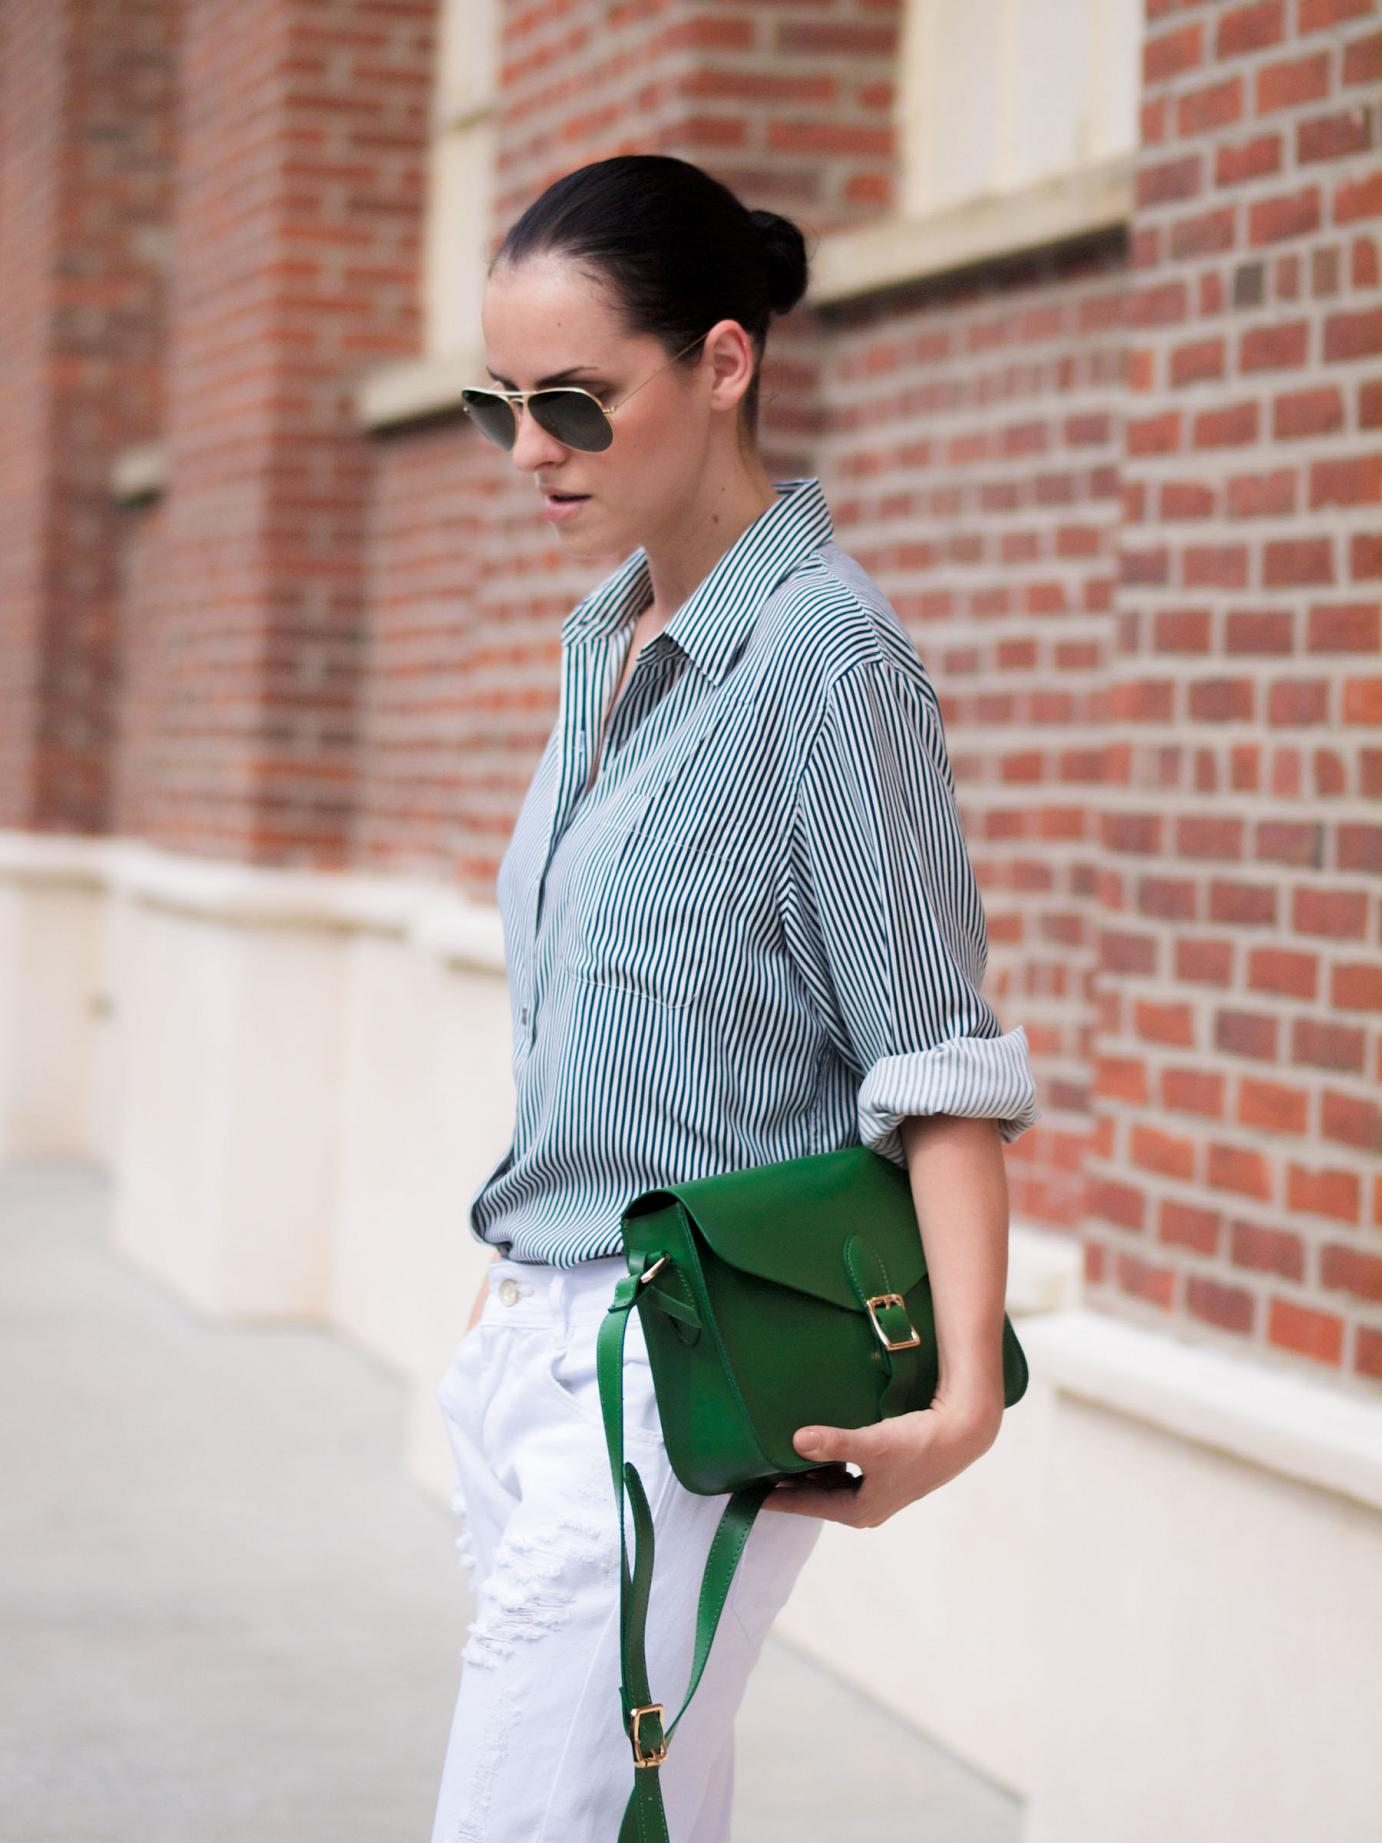 BITTERSWEET COLOURS, angela Roi bag, green bag, boyfriend jeans, white jeans, j.crew shoes, stripes, street style. ray ban, lord and taylor,